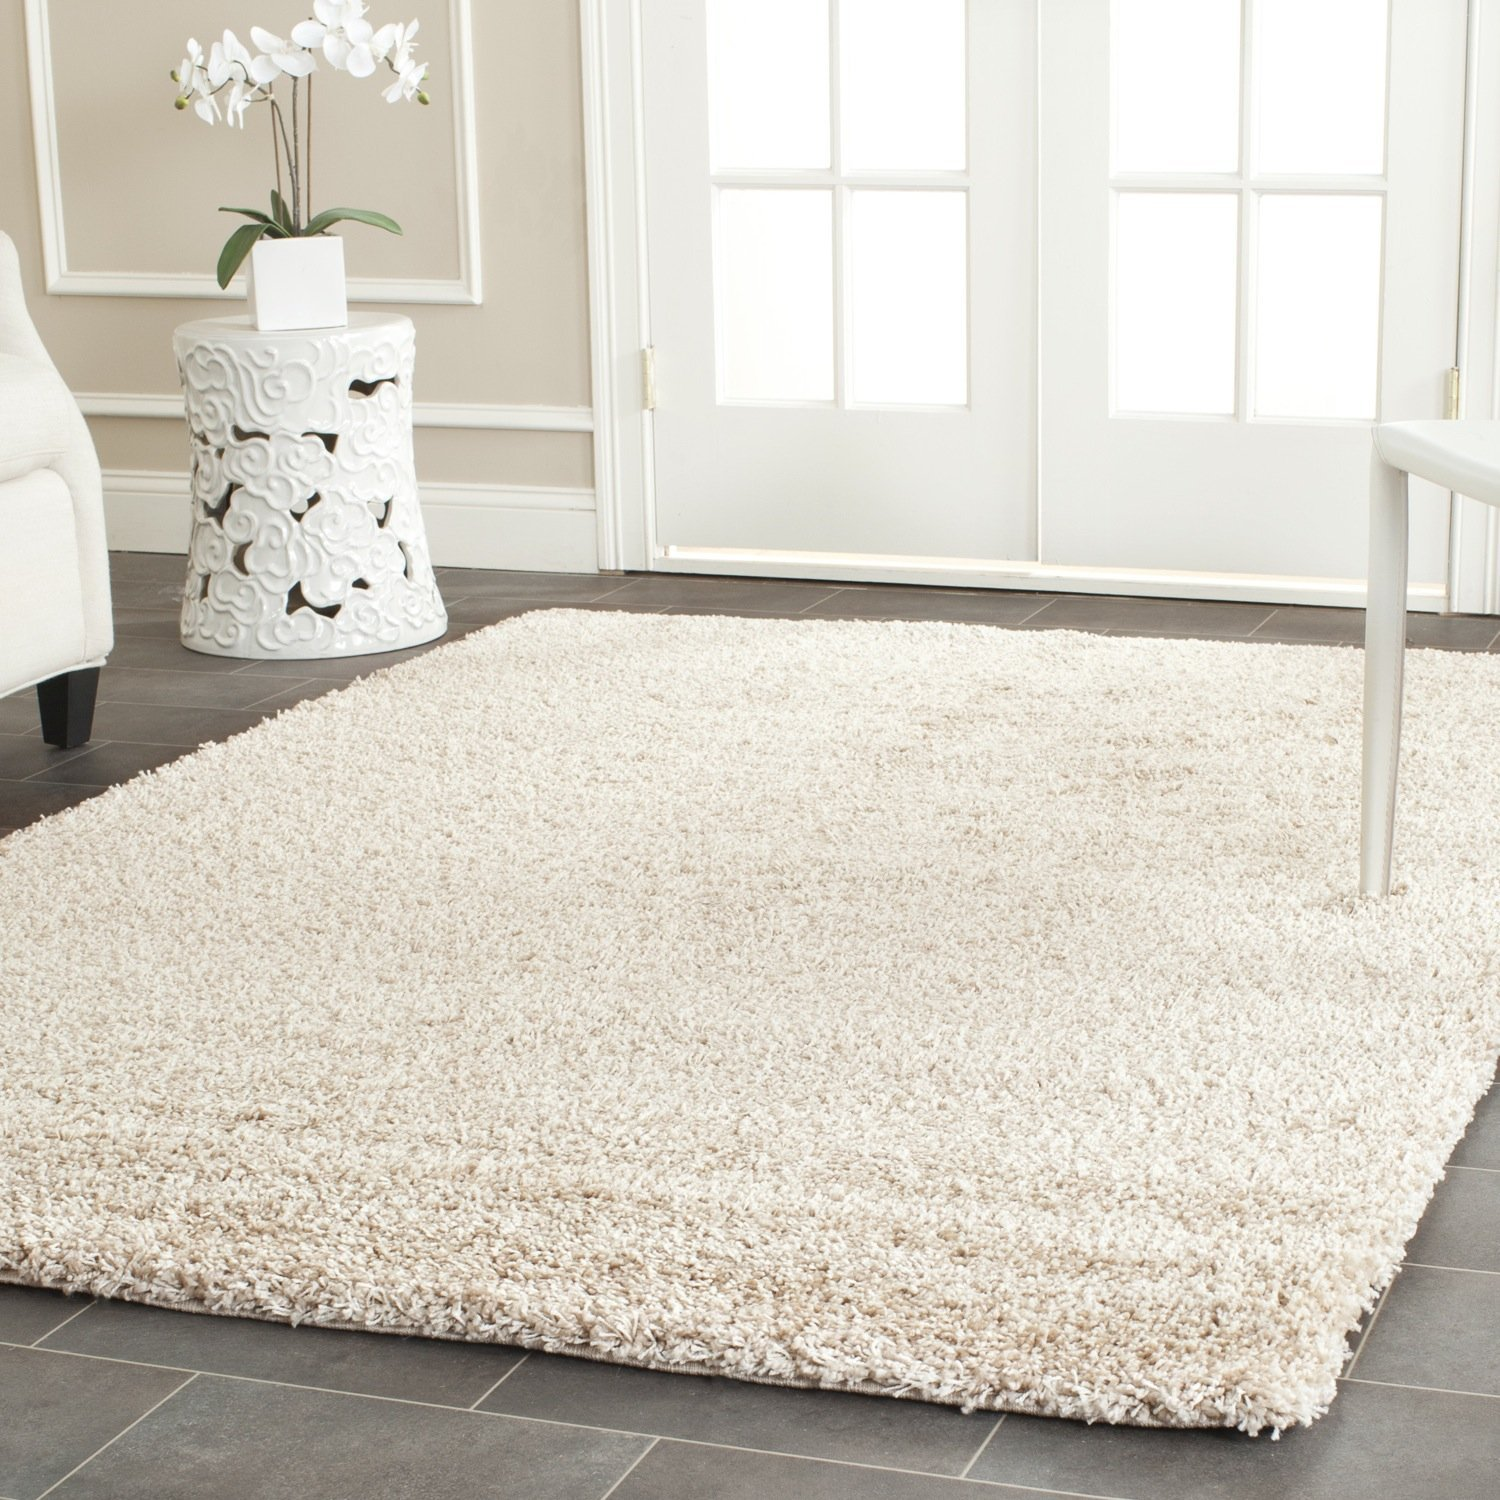 top 10 best floor carpets for home 2017 - home floor carpets reviews